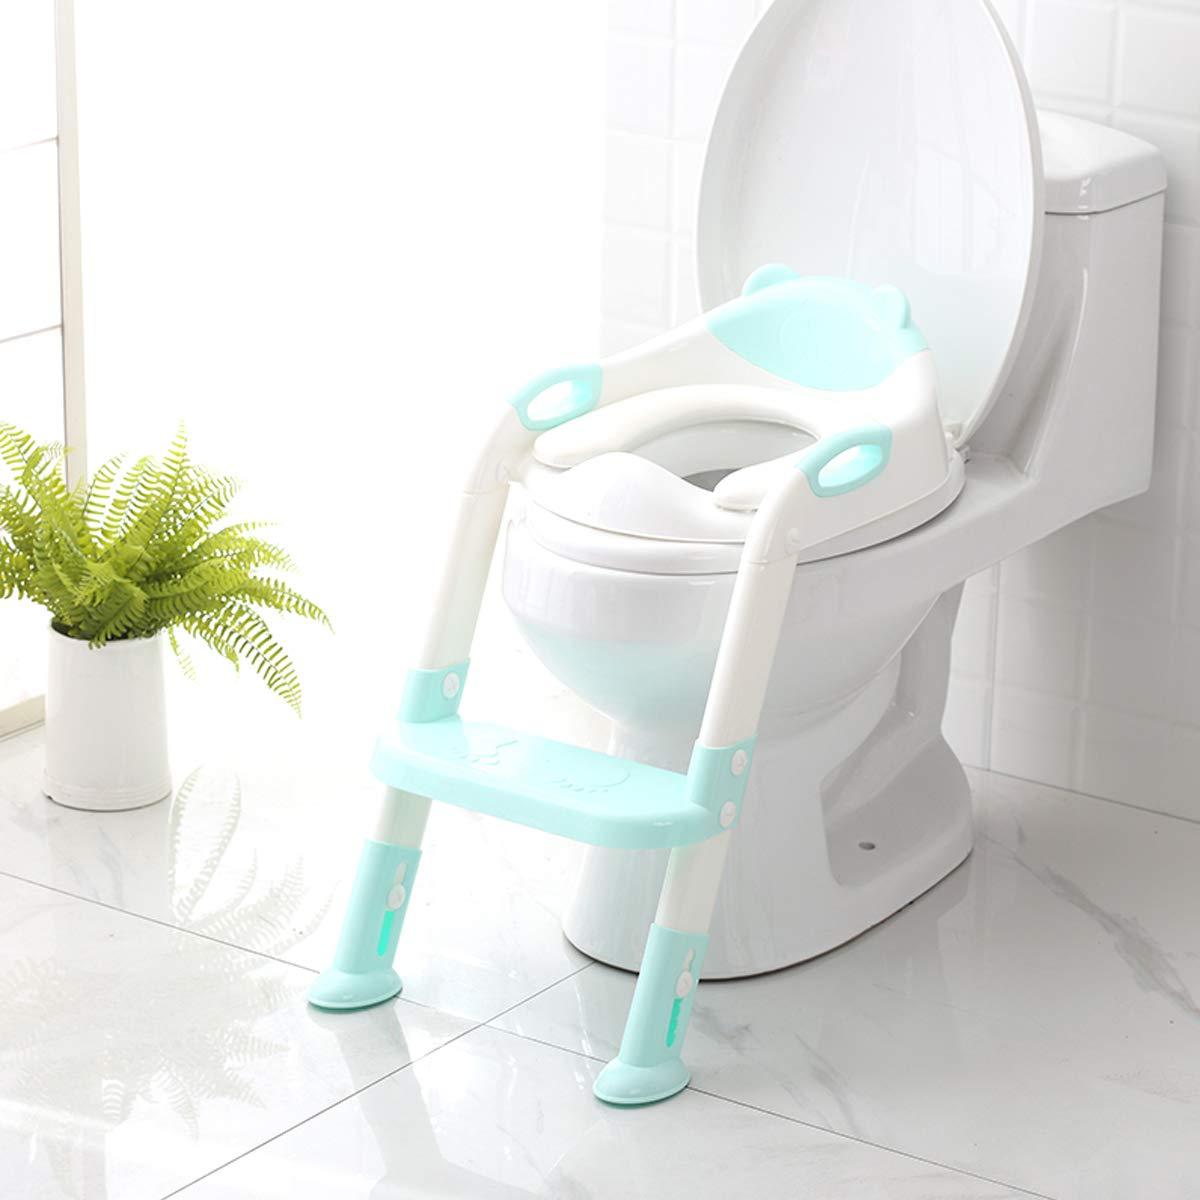 Potty Training Seat mit Step Stool Ladder,Skyroku Potty Training Toilet für Kids Boys Girls Toddlers-Comfortable Safe Potty Seat mit Anti-Slip Pads Ladder (Blue)